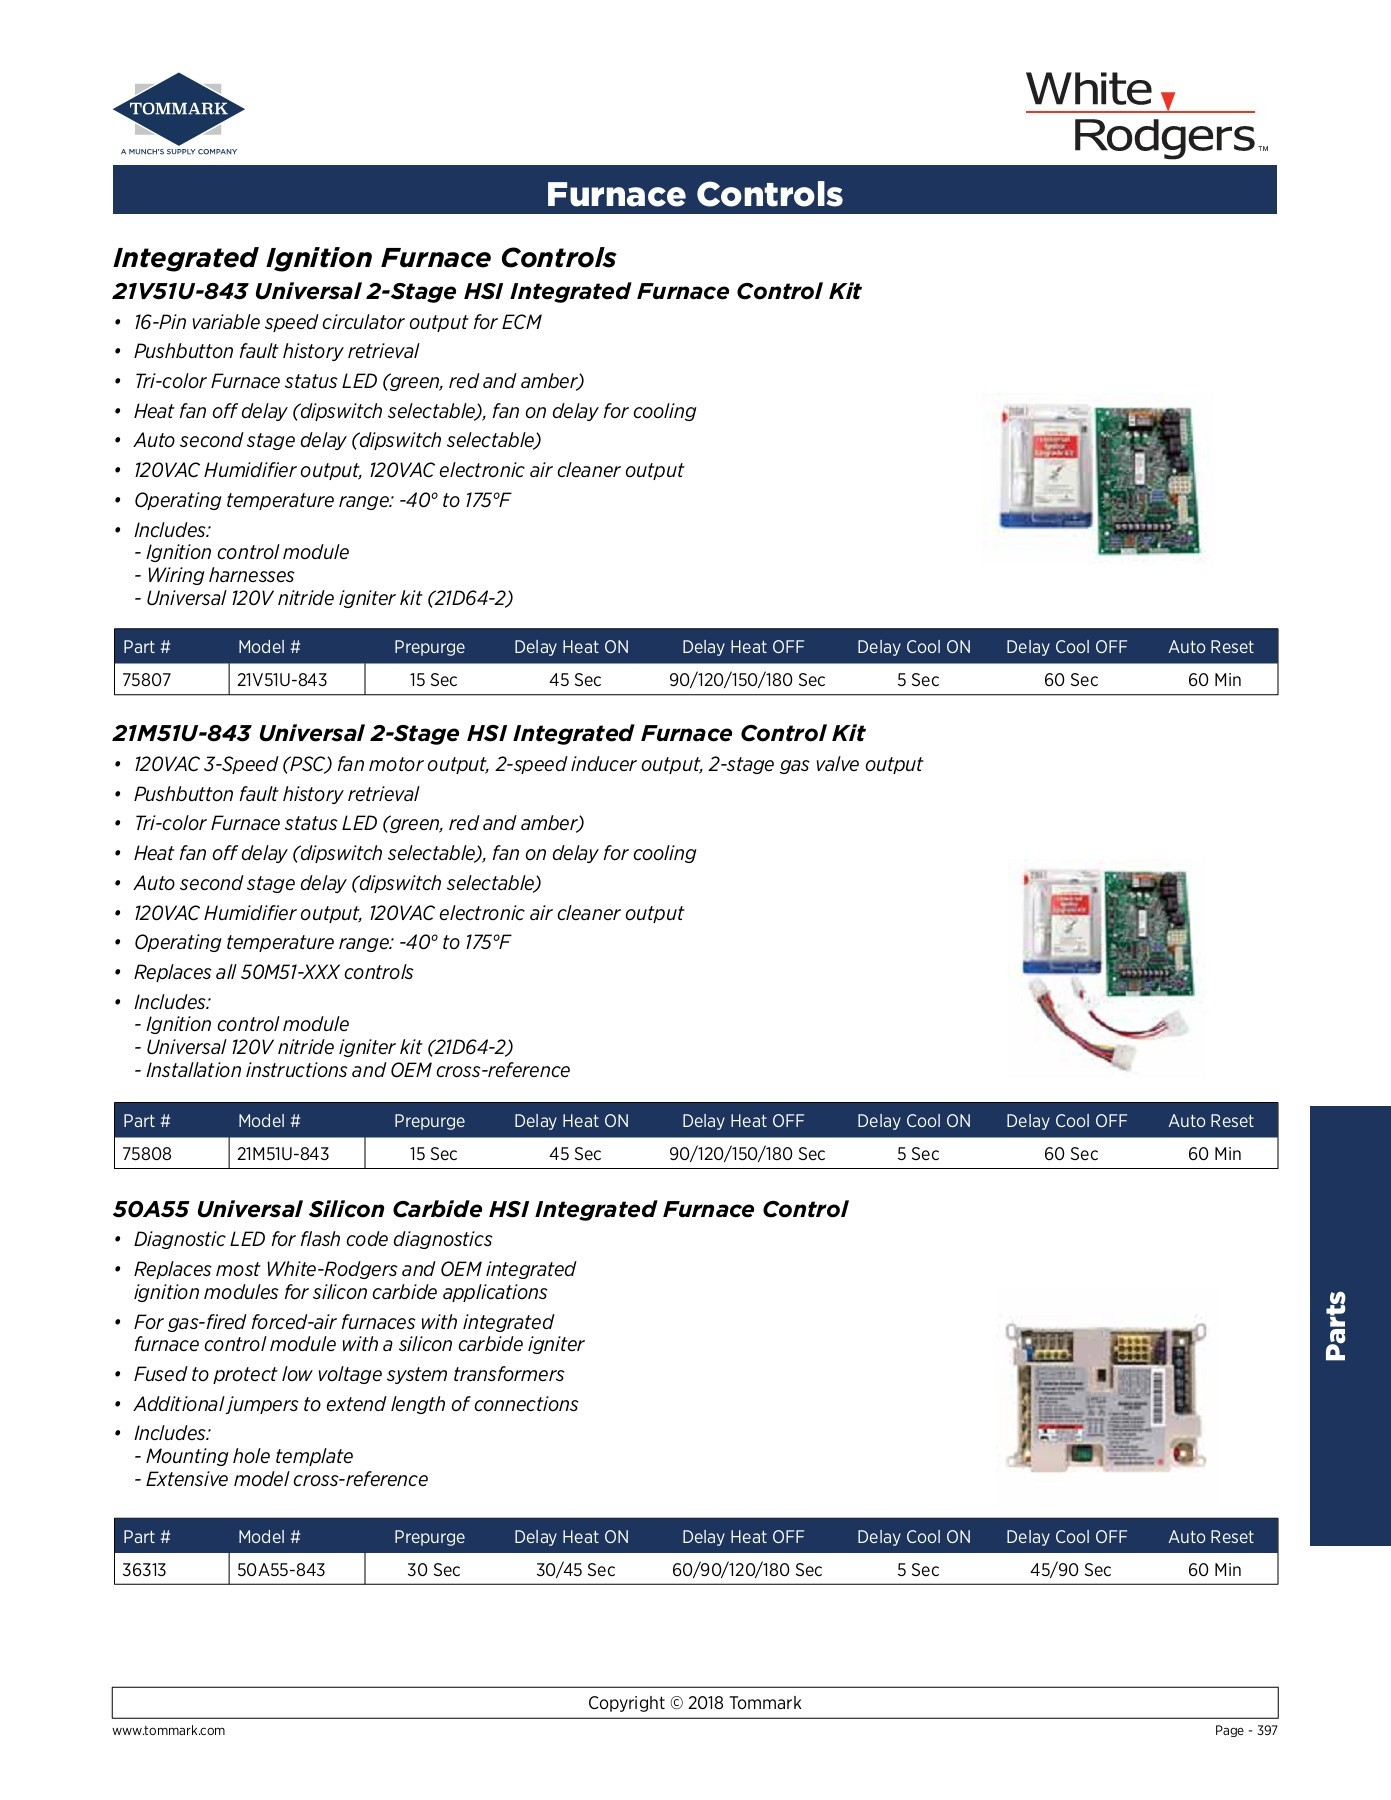 small resolution of 06708 1118 tommark trane catalog pages 401 450 text version fliphtml5